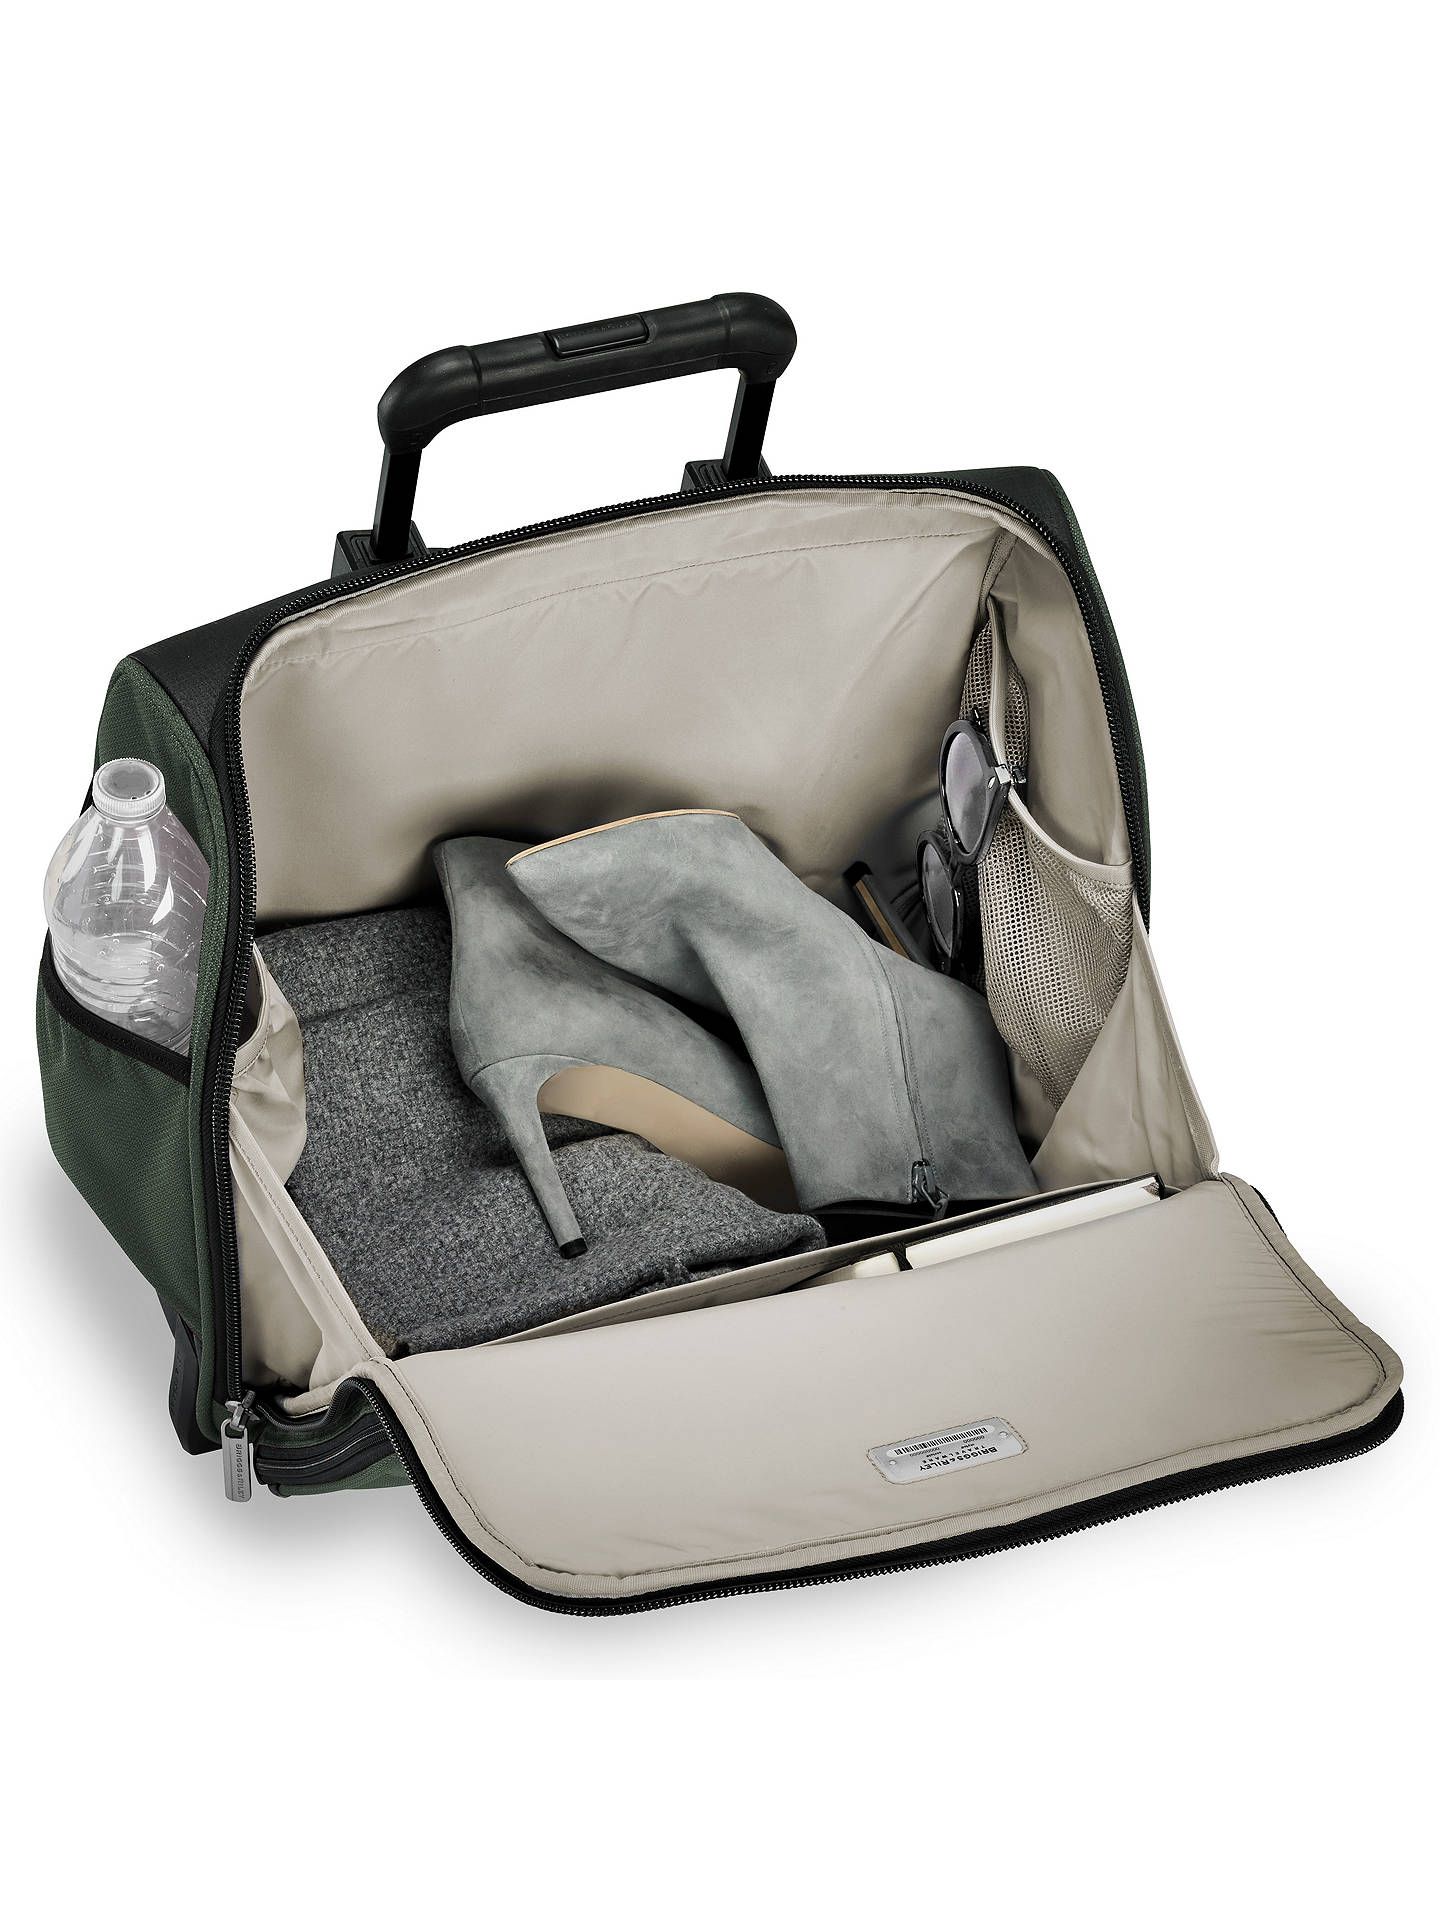 BuyBriggs & Riley Rolling Cabin Bag, Rainforest Online at johnlewis.com